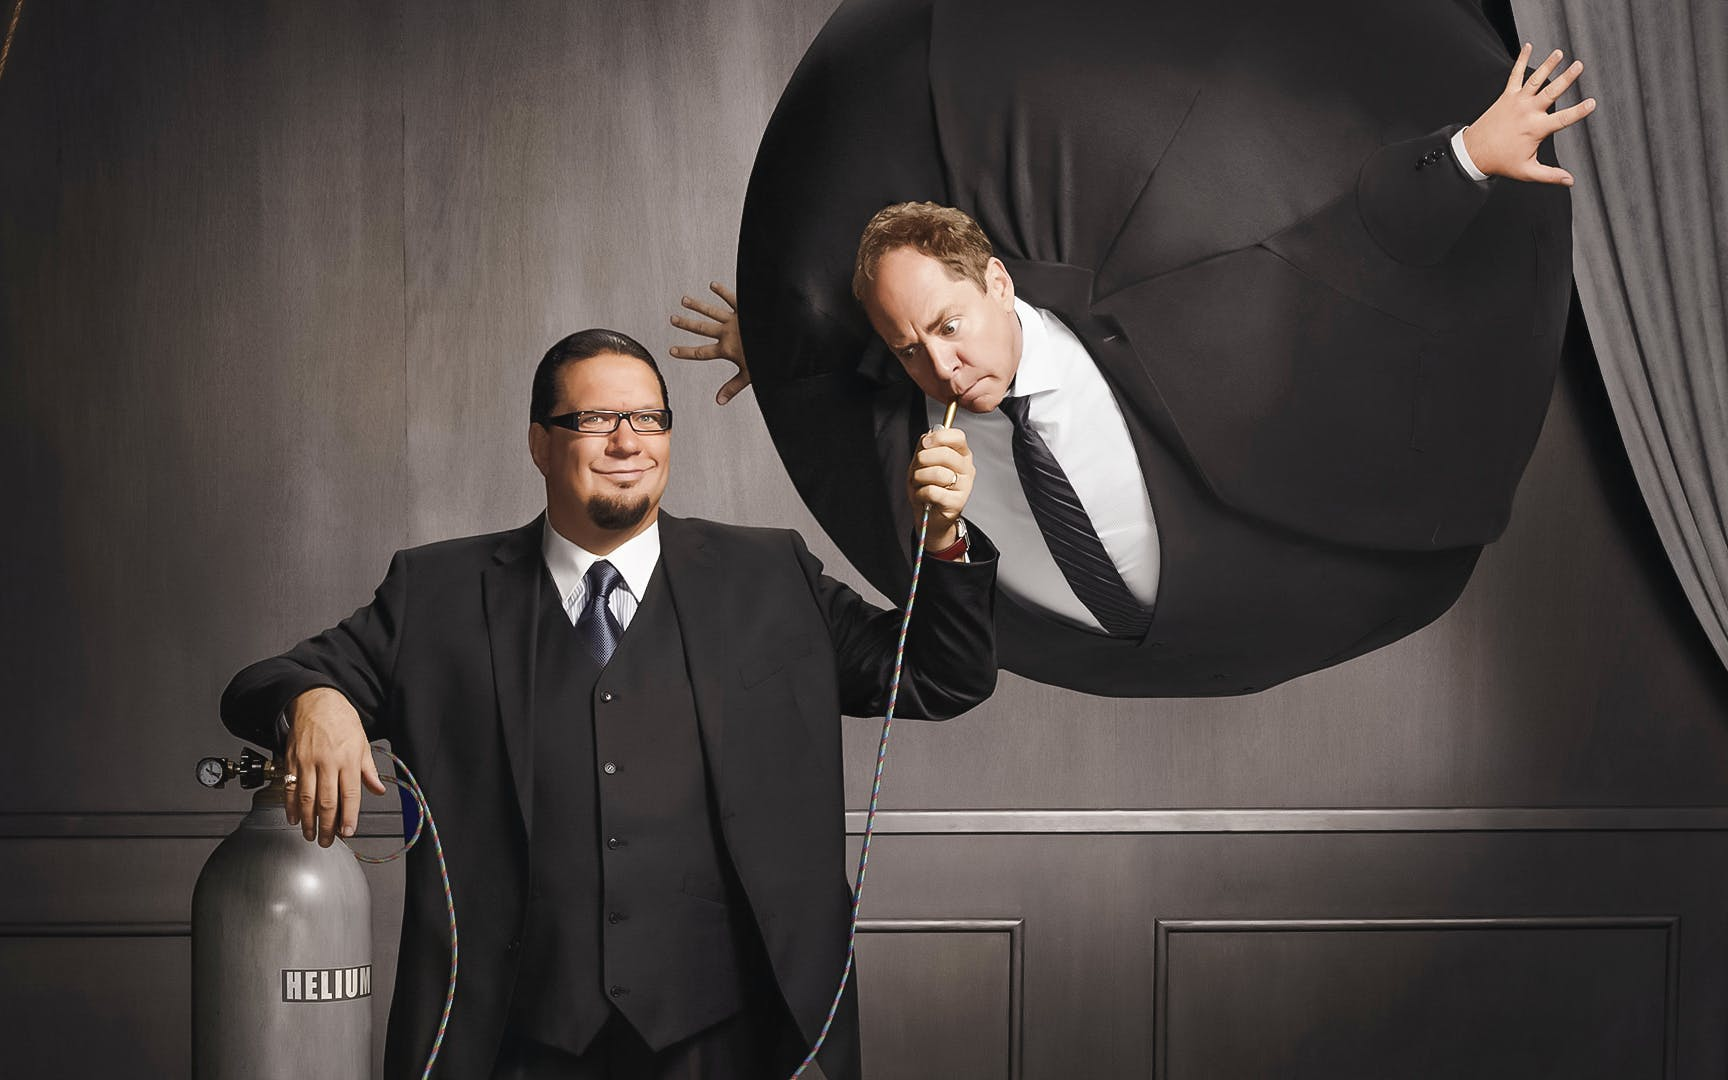 Penn and Teller - Magical Comedy